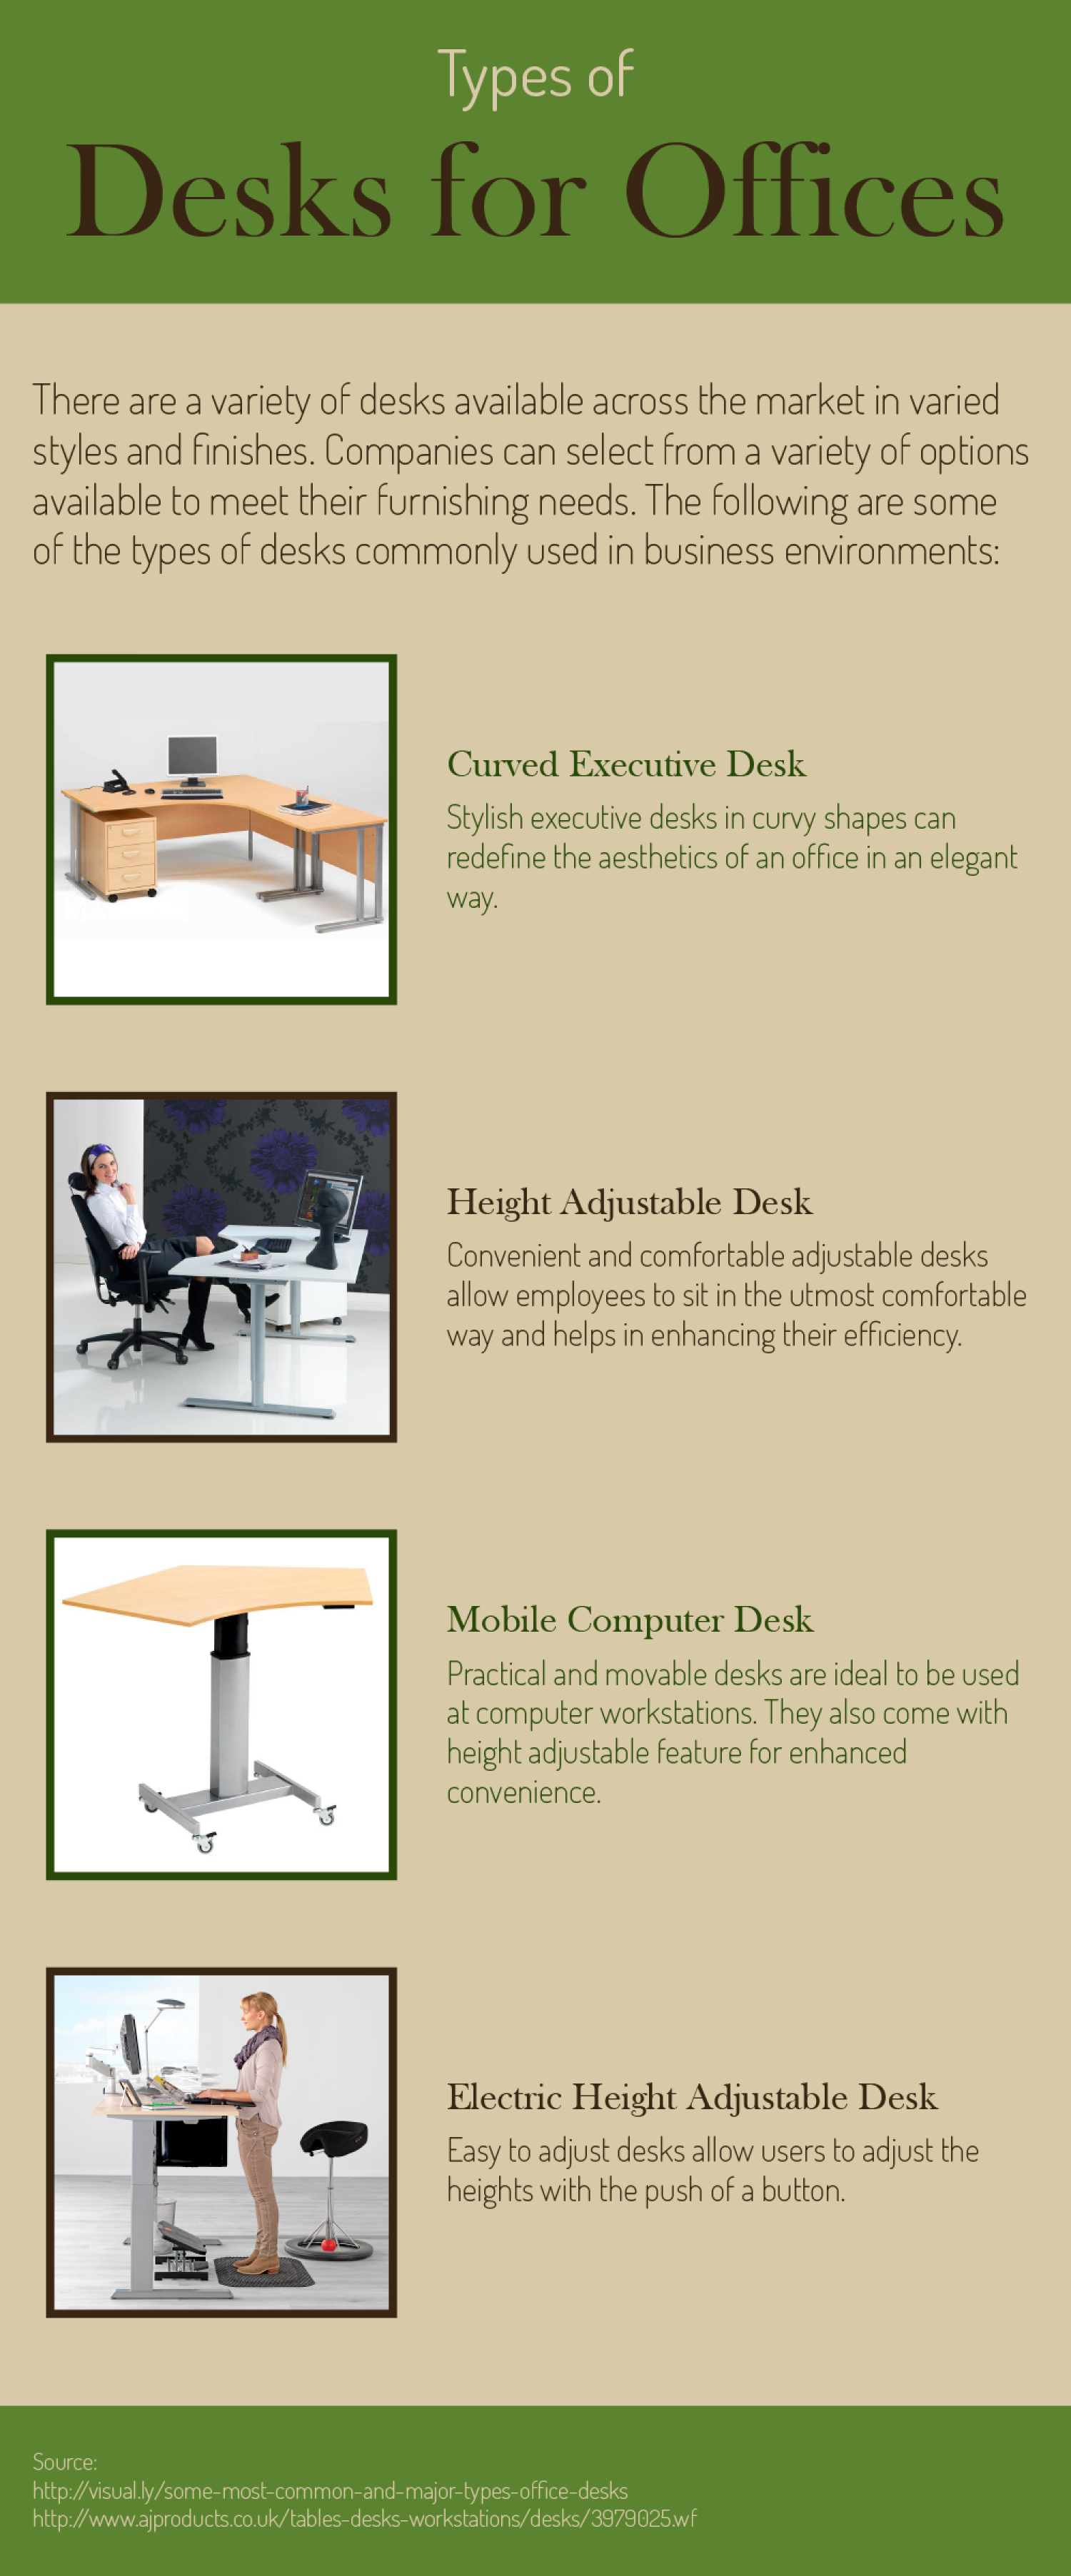 Types Of Desks Amazing Types Of Desks For Offices  Visual.ly Design Decoration